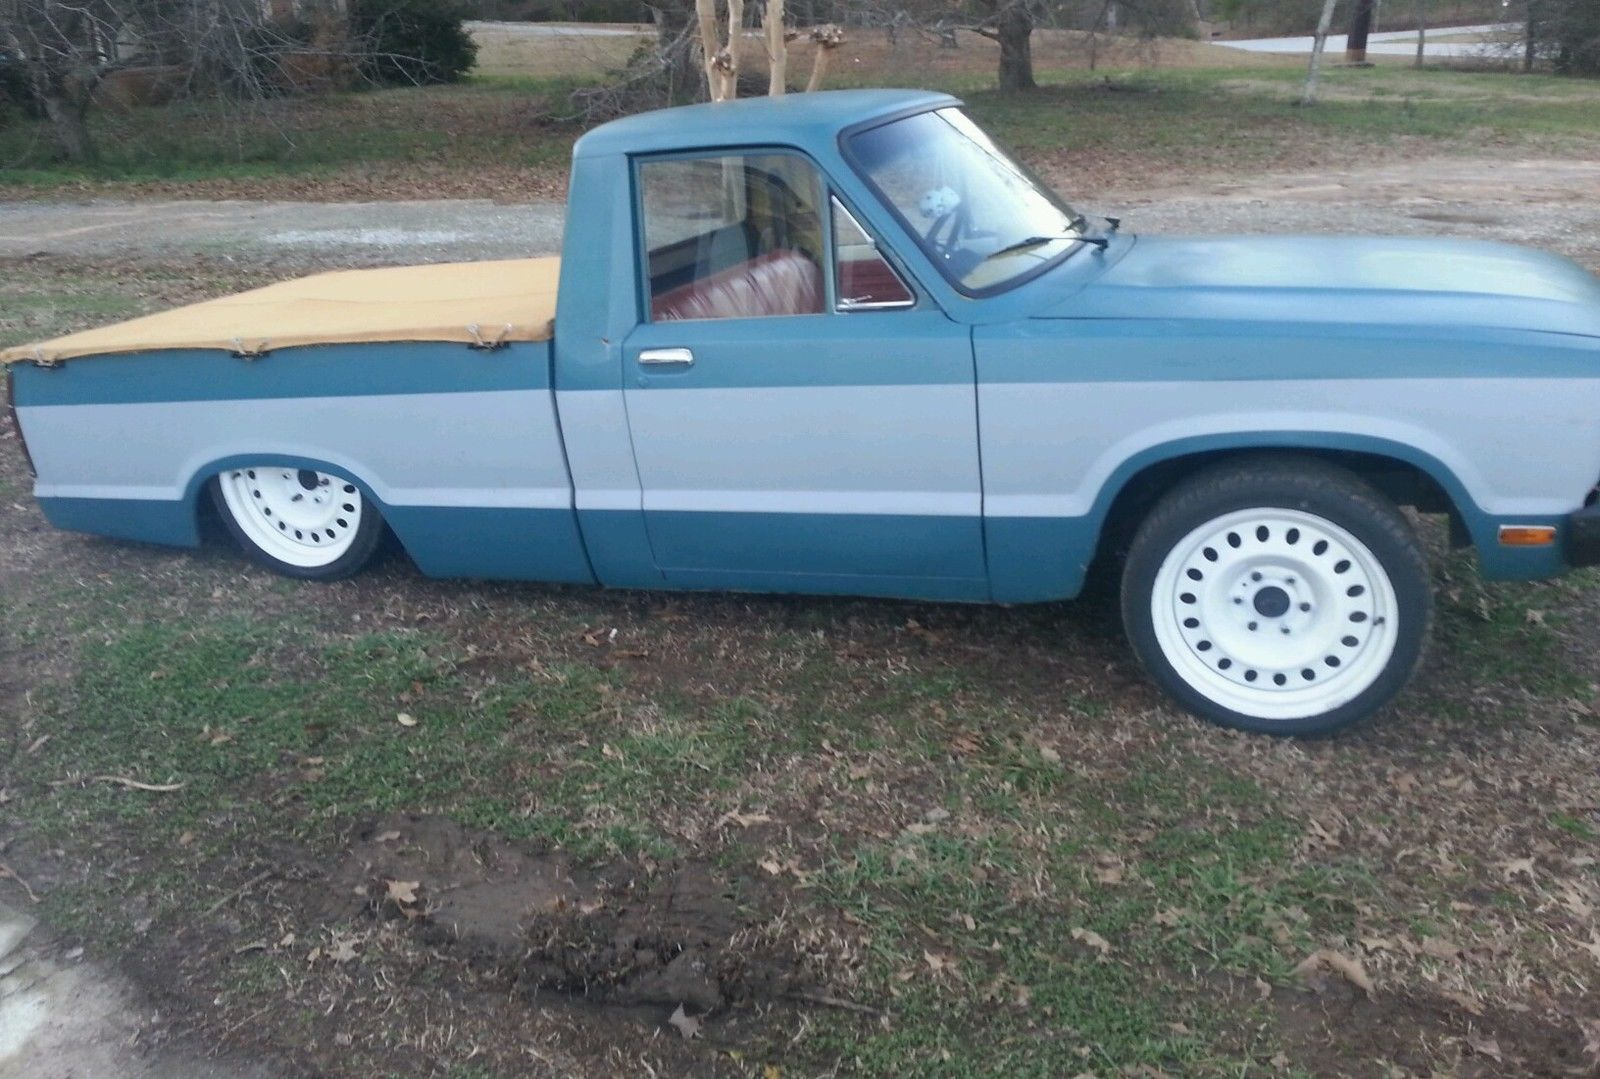 1980 Ford Courier Mini Truck Rat Rod 23 Bagged For Sale In Interior Lawrenceville Georgia United States